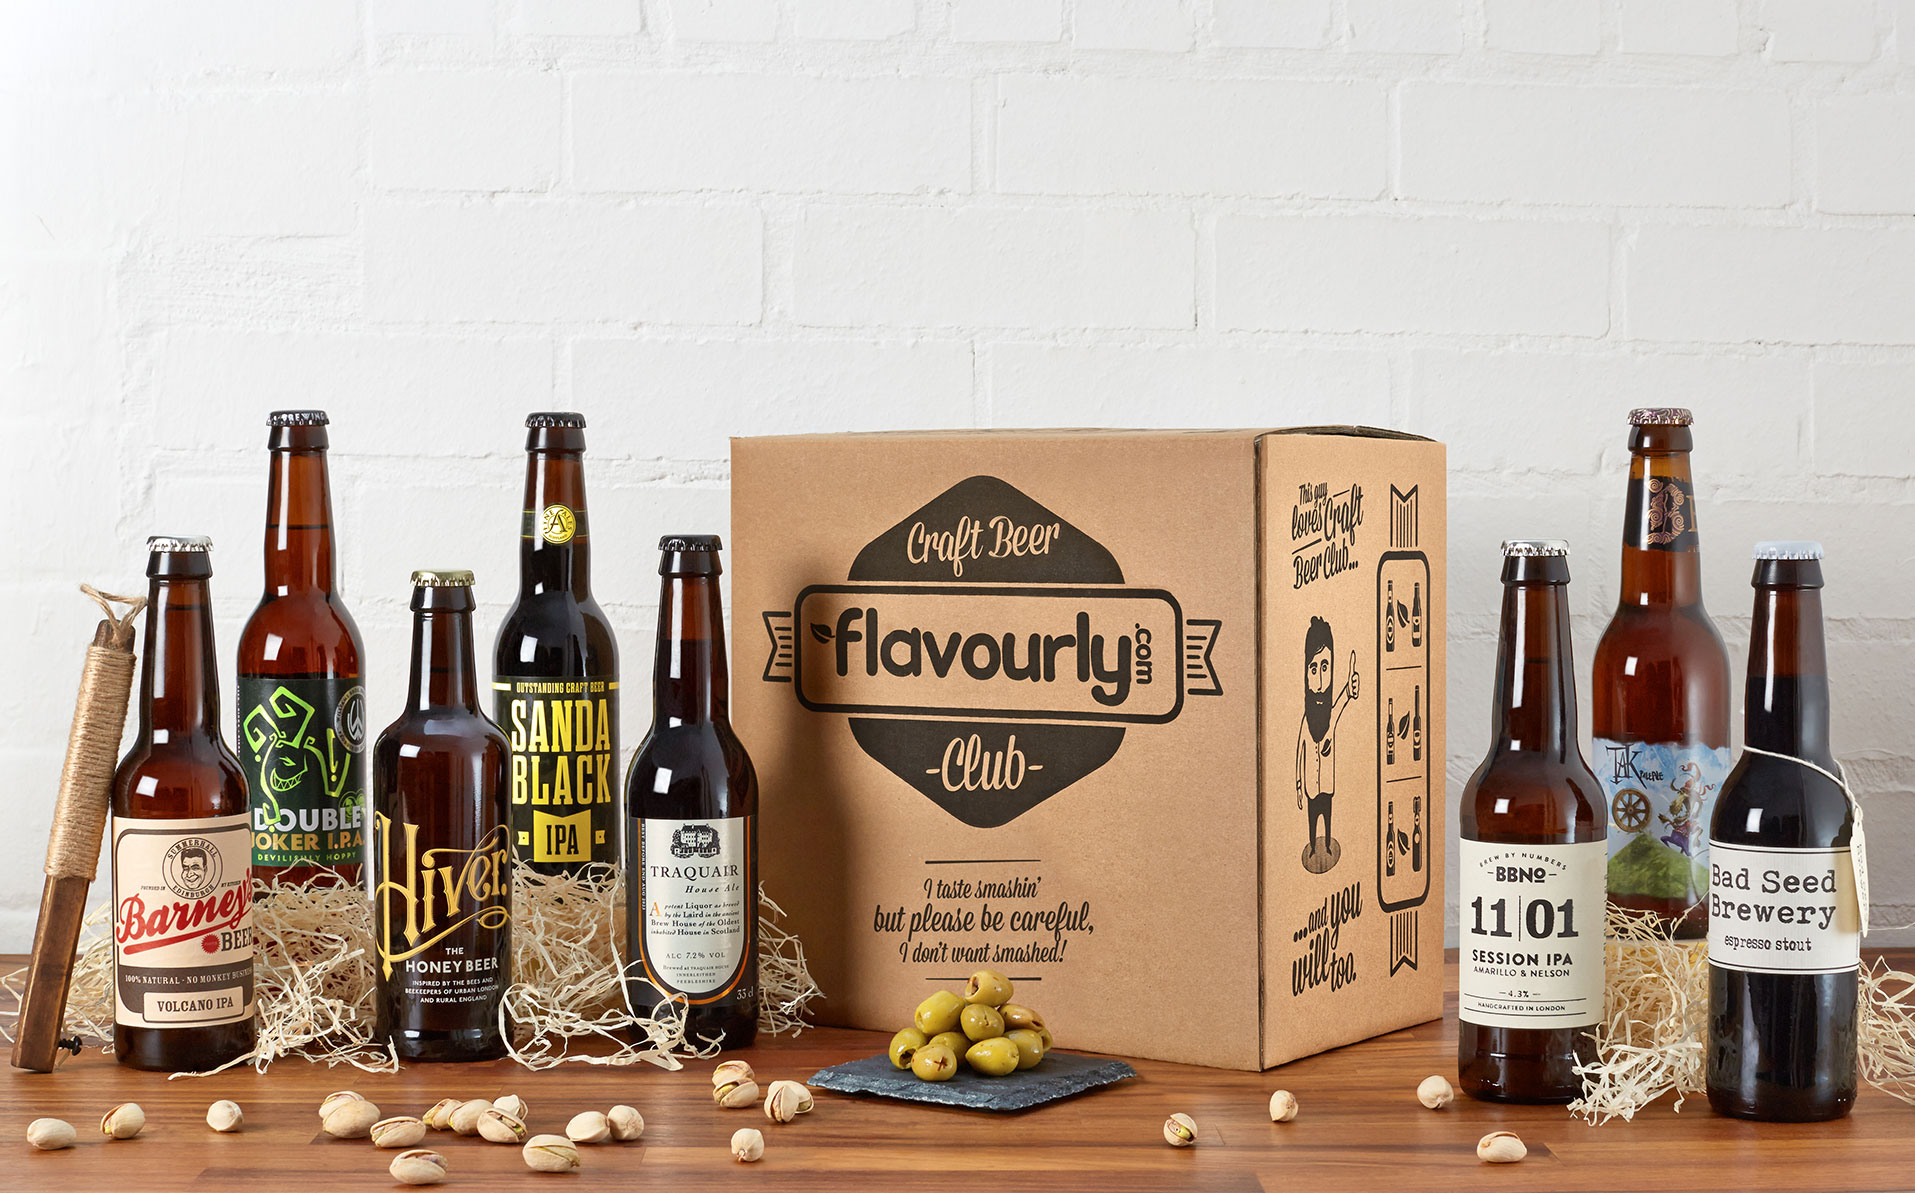 A Mixed Selection of Craft Beers by Flavourly